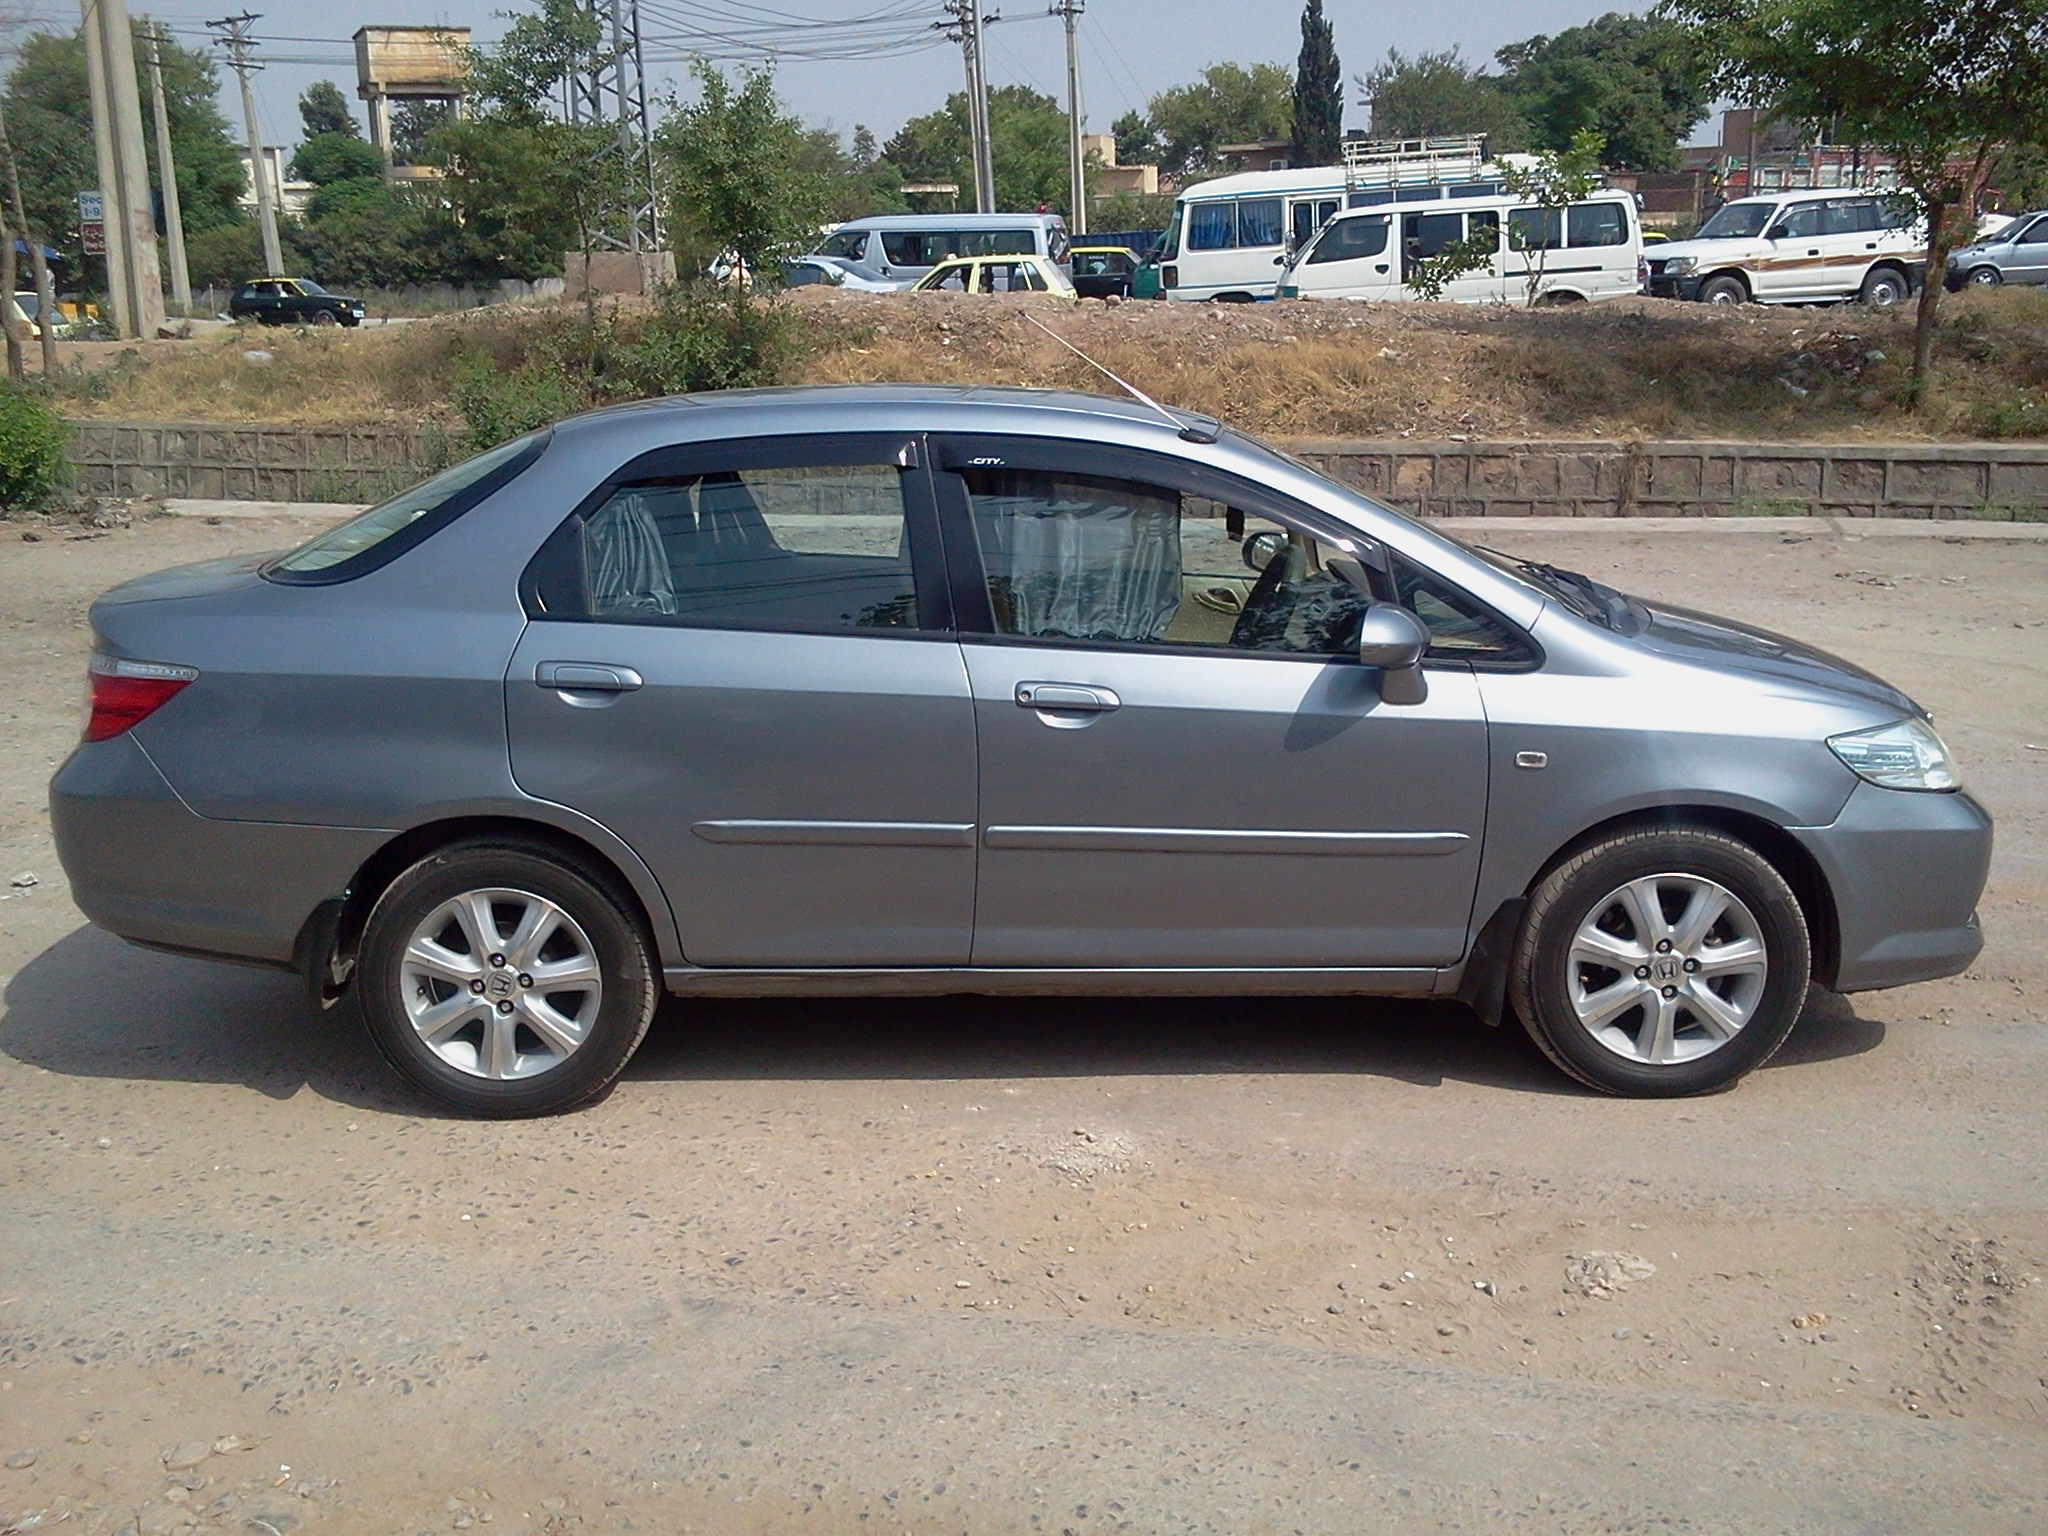 2011 Honda Accord For Sale >> Honda City 2006 of JANASHEEN - Member Ride 16192 | PakWheels